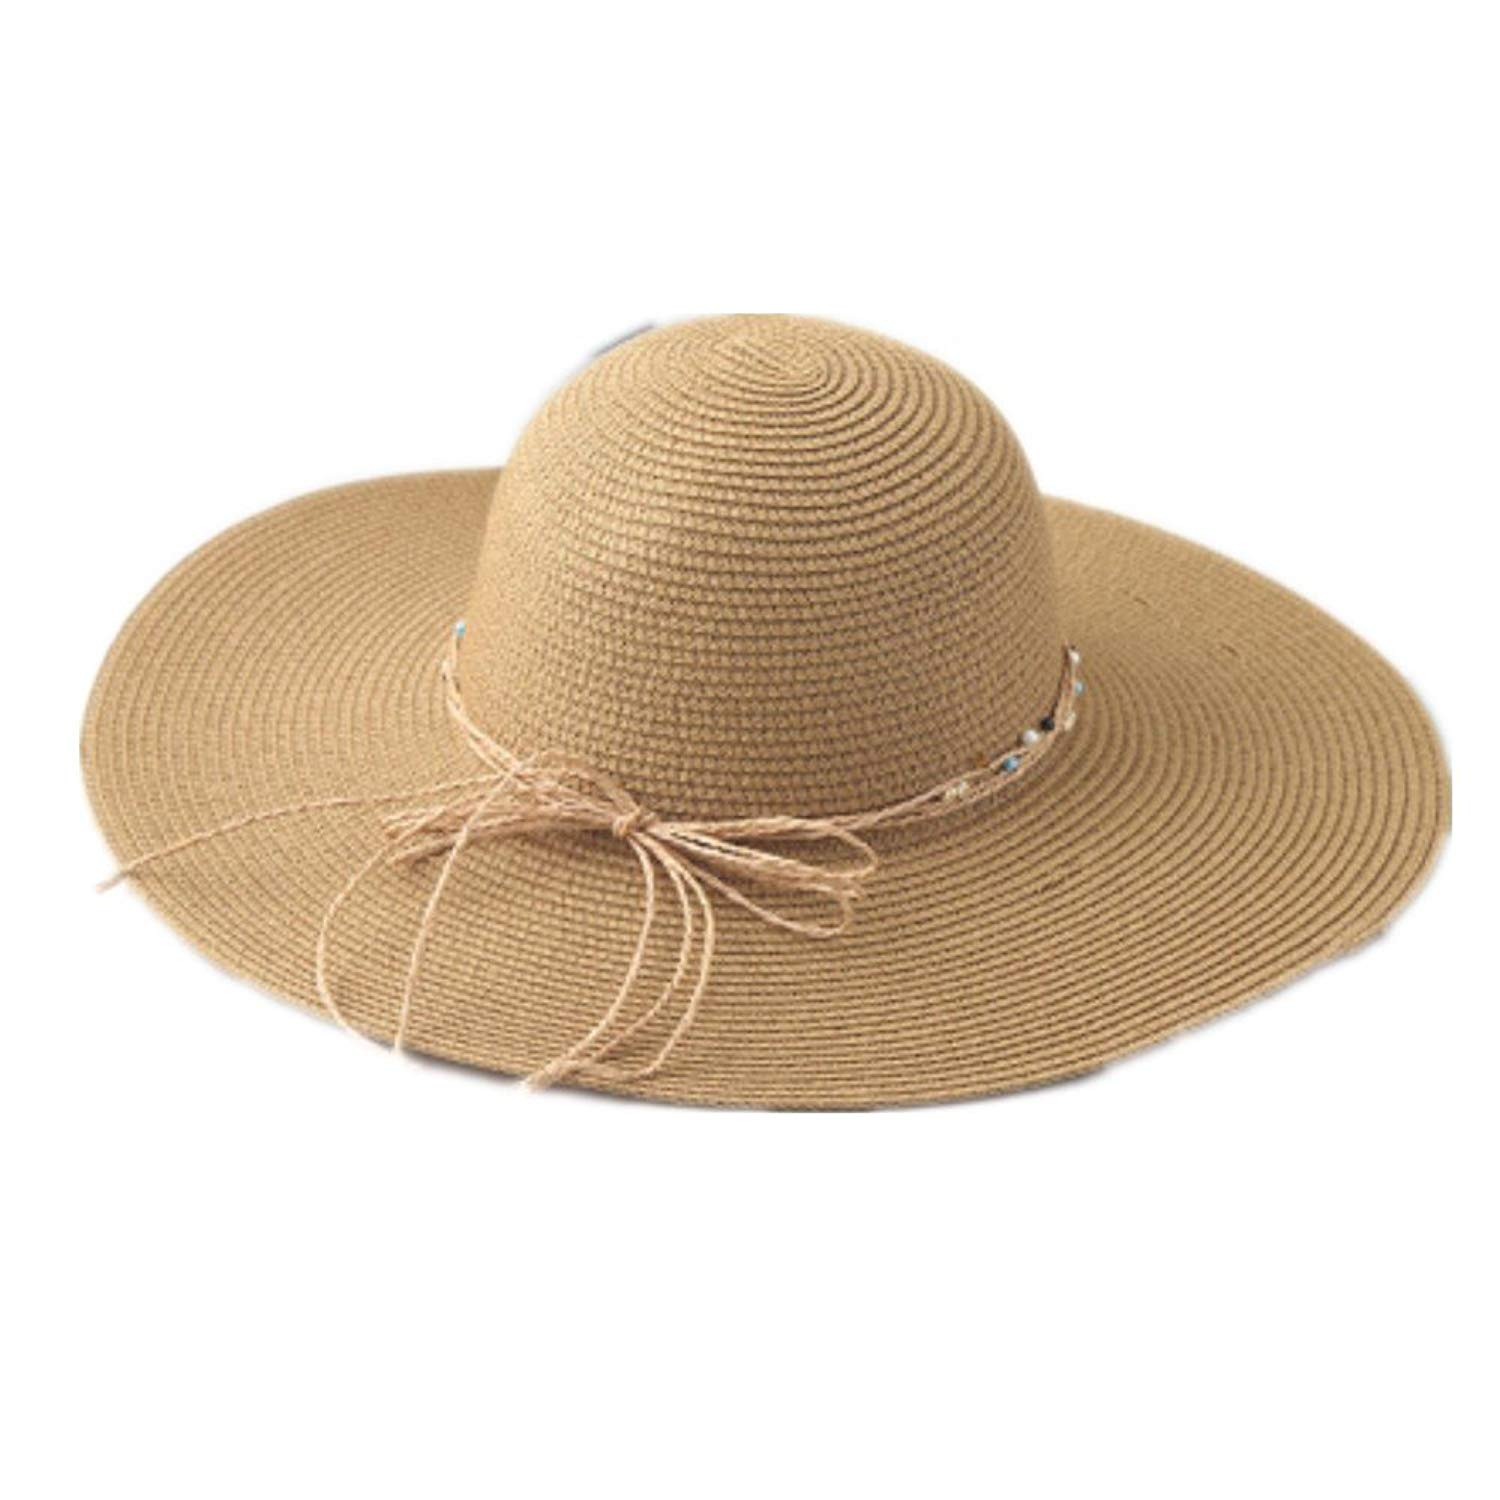 Get Quotations · tNtekj Summer Women Large Brimmed Wide Straw Hats Packable  Beach Hats c6cb2329f5f2